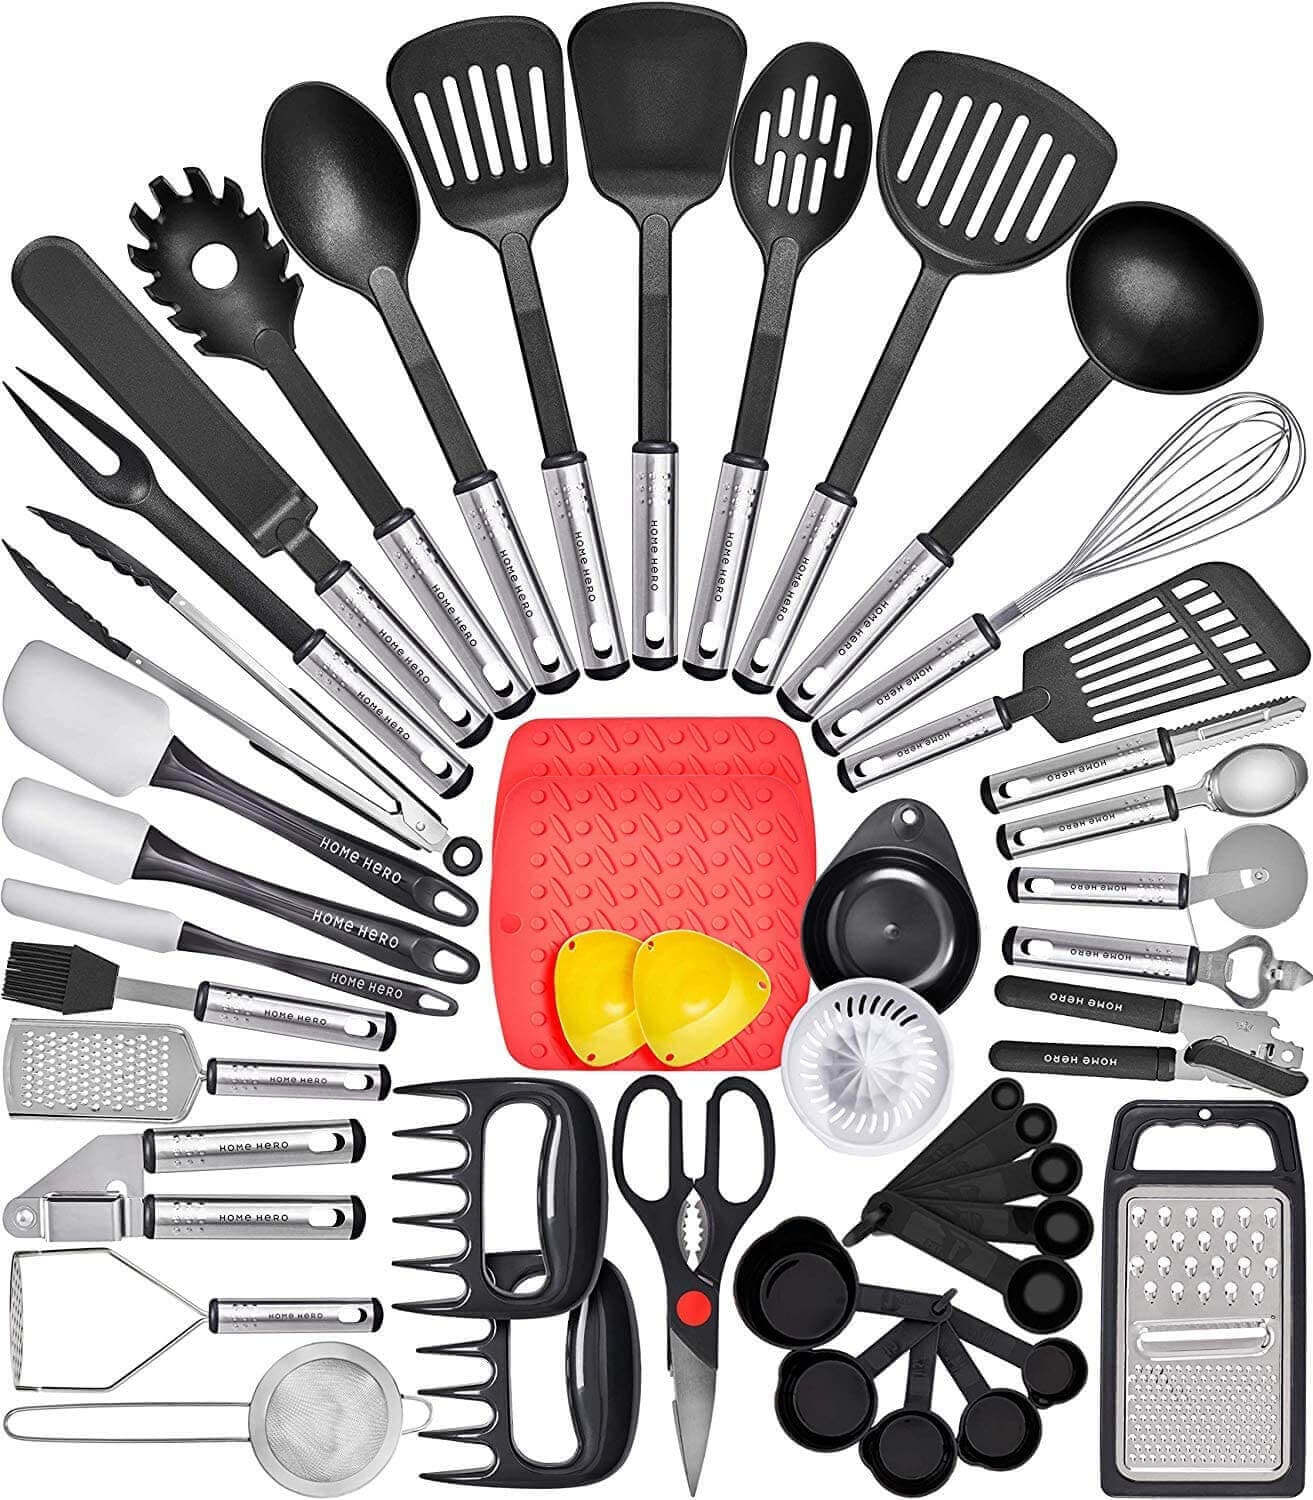 Multiple kitchen utensils and tools